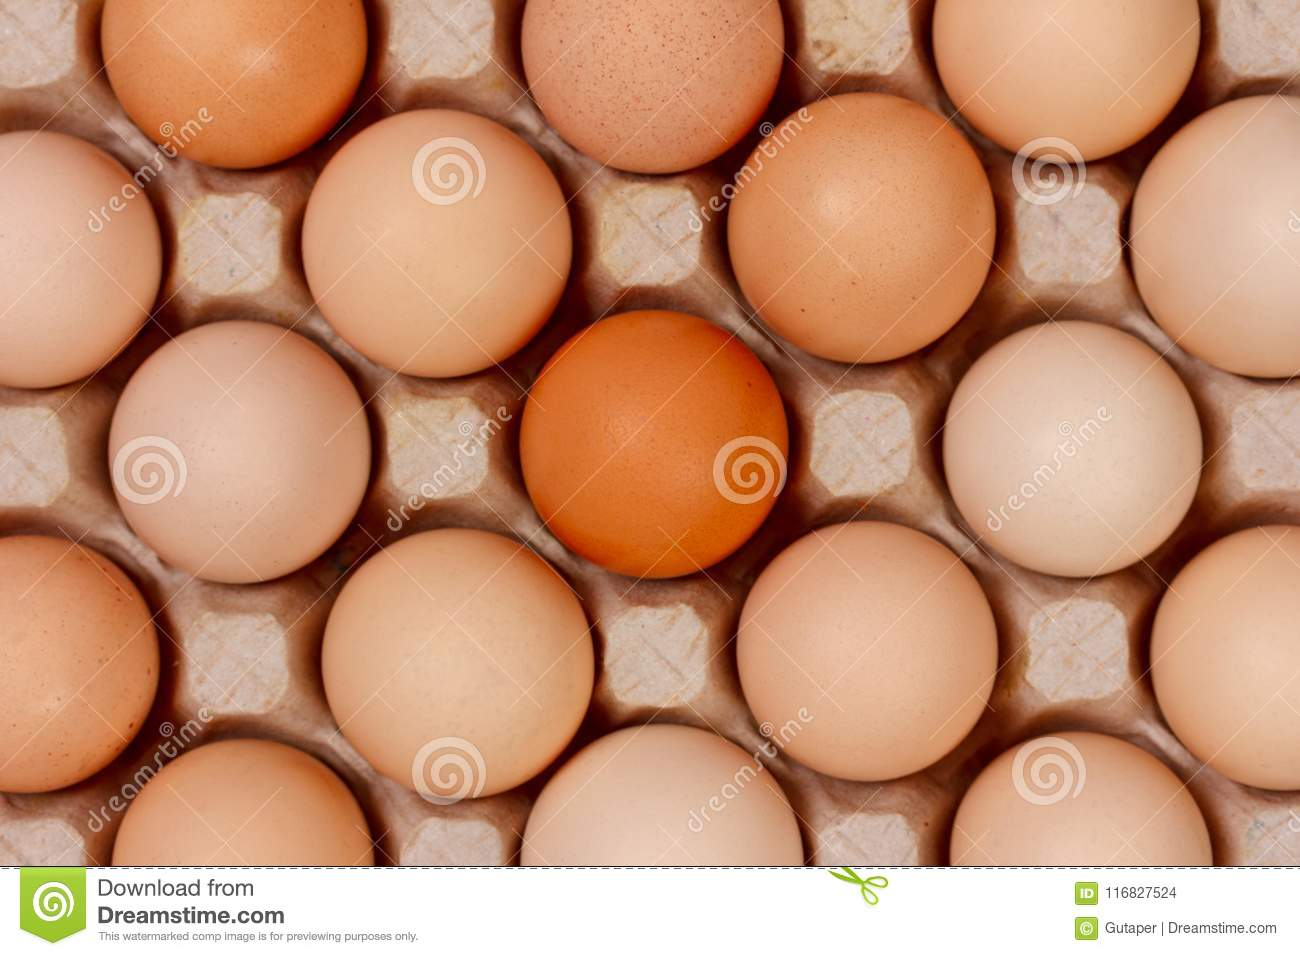 Download The Eggs In The Carton Boxes